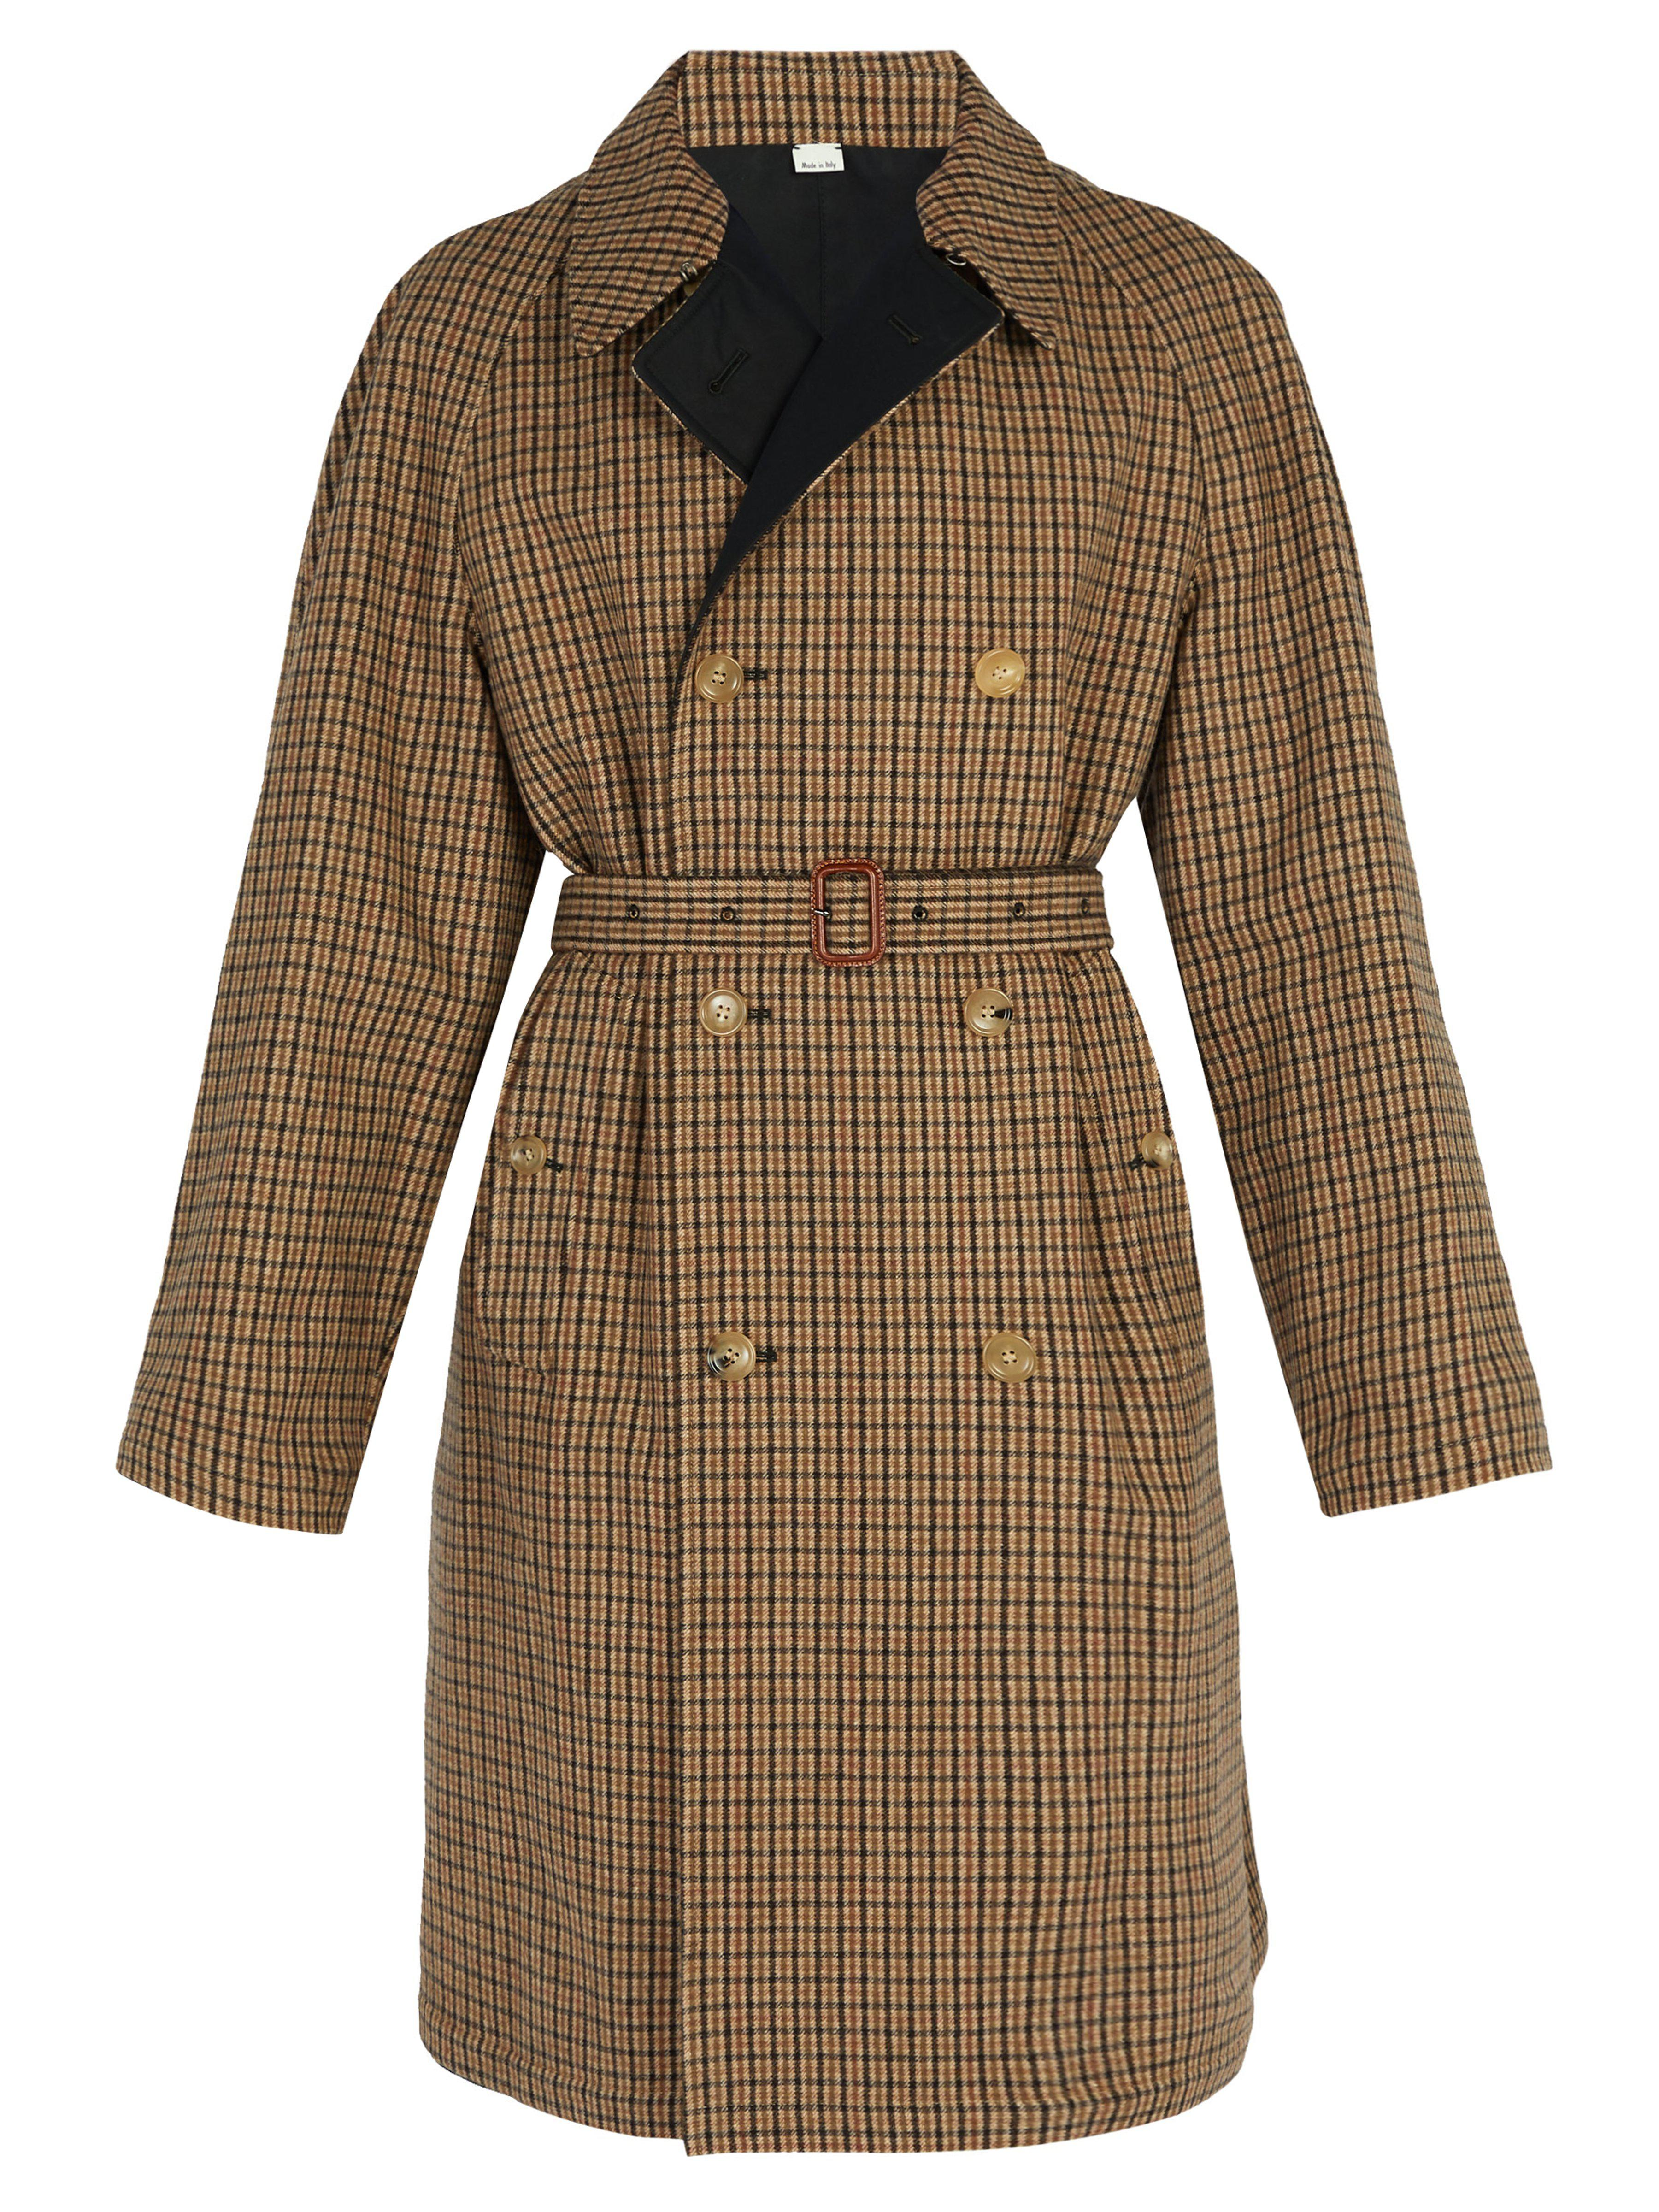 7005832950b5 Gucci Reversible Embroidered Wool Trench Coat in Brown for Men - Lyst